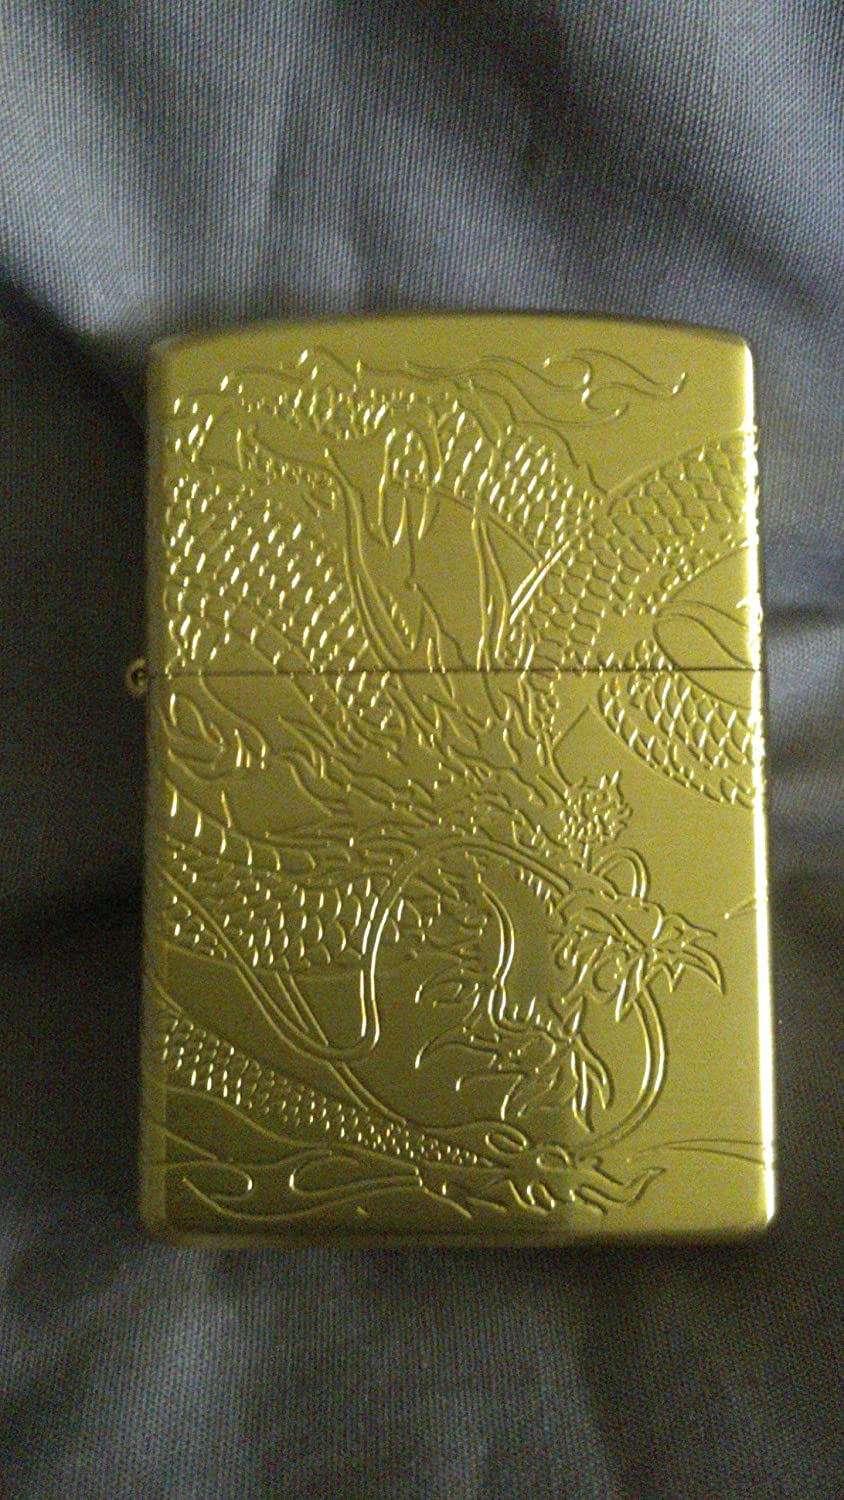 Japanese 4 Sides Engraved Gold Dragon Zippo Lighter Health Personal Care